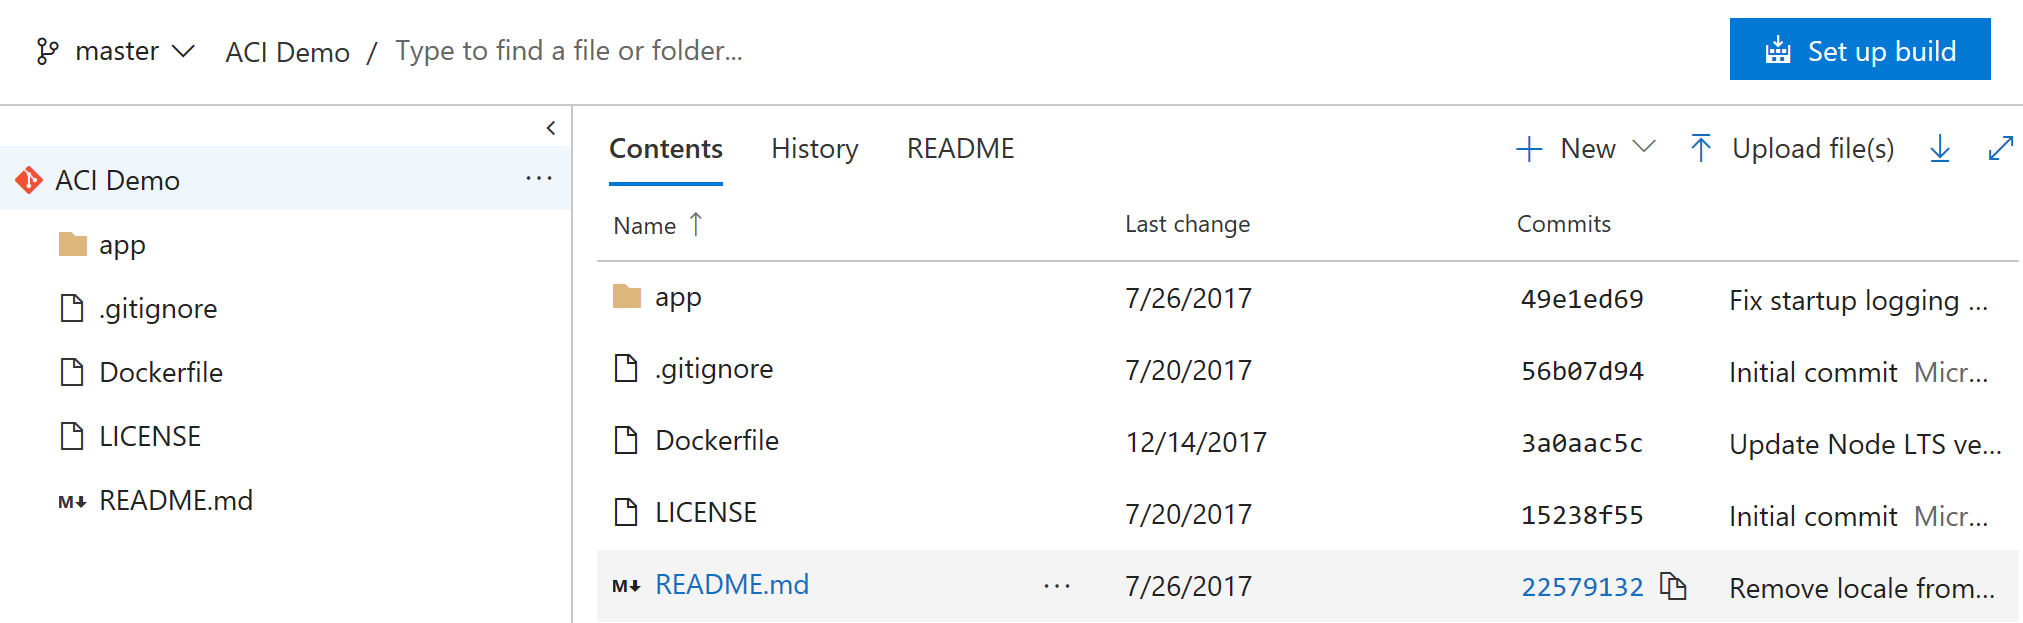 VSTS: New Repository